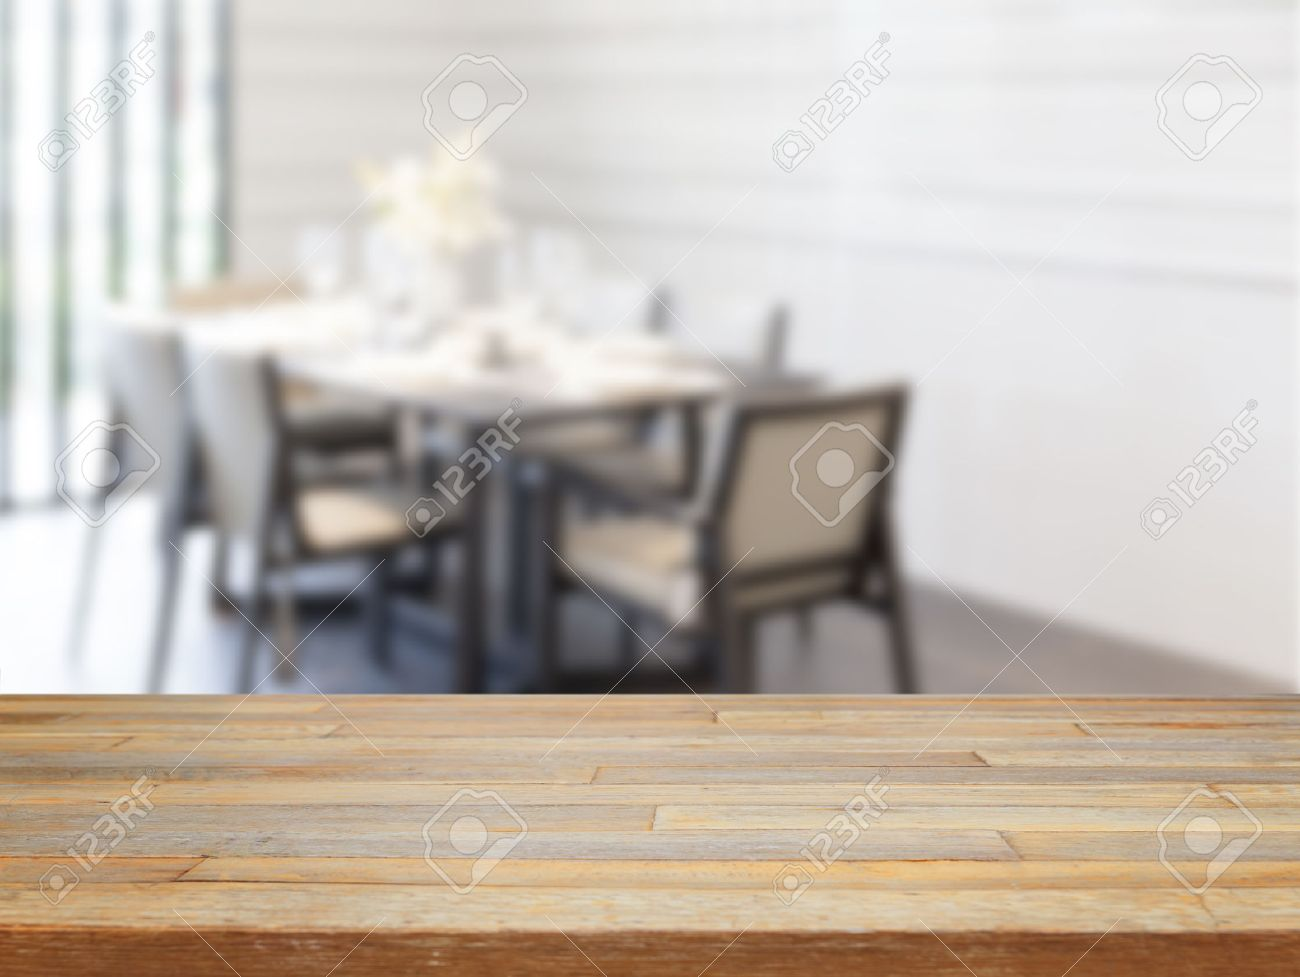 Empty wooden table and dining room tables background, product display - 40383627